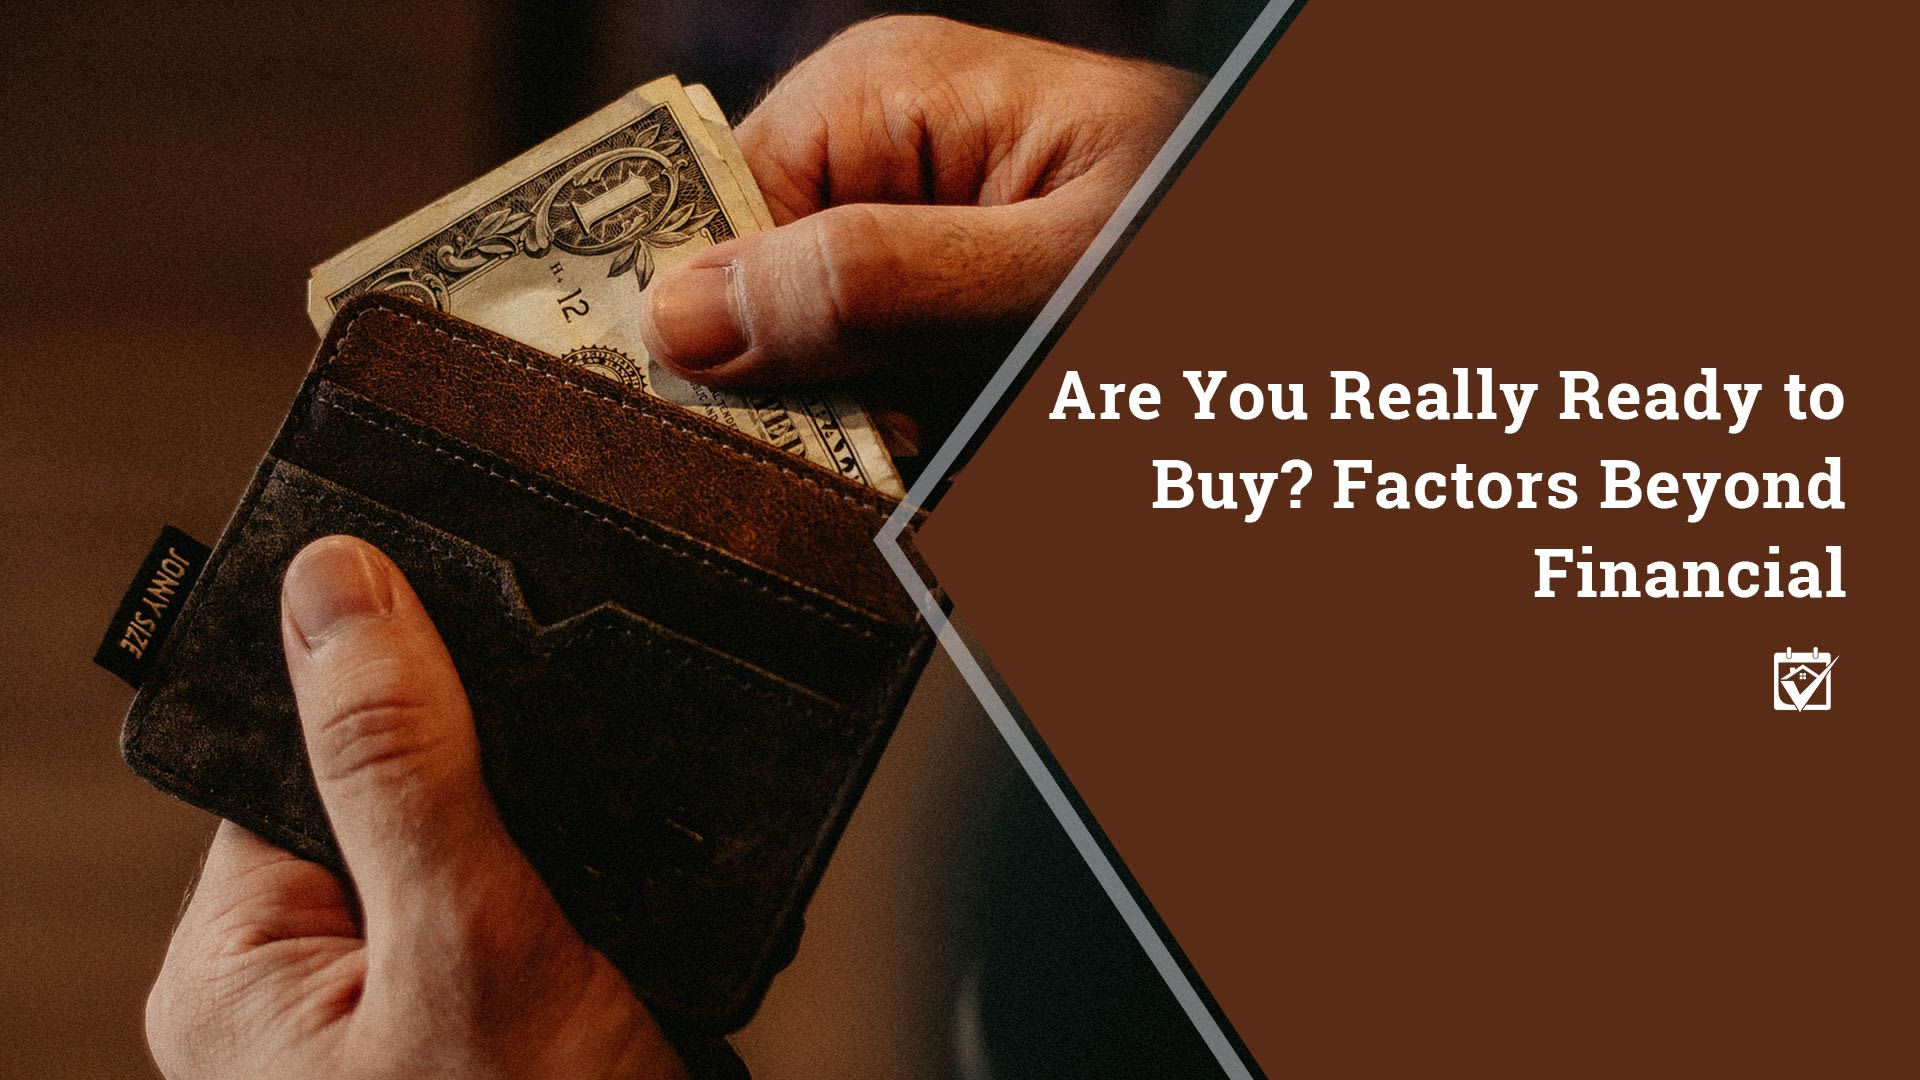 Are You Really Ready To Buy, Factors Beyond Financial